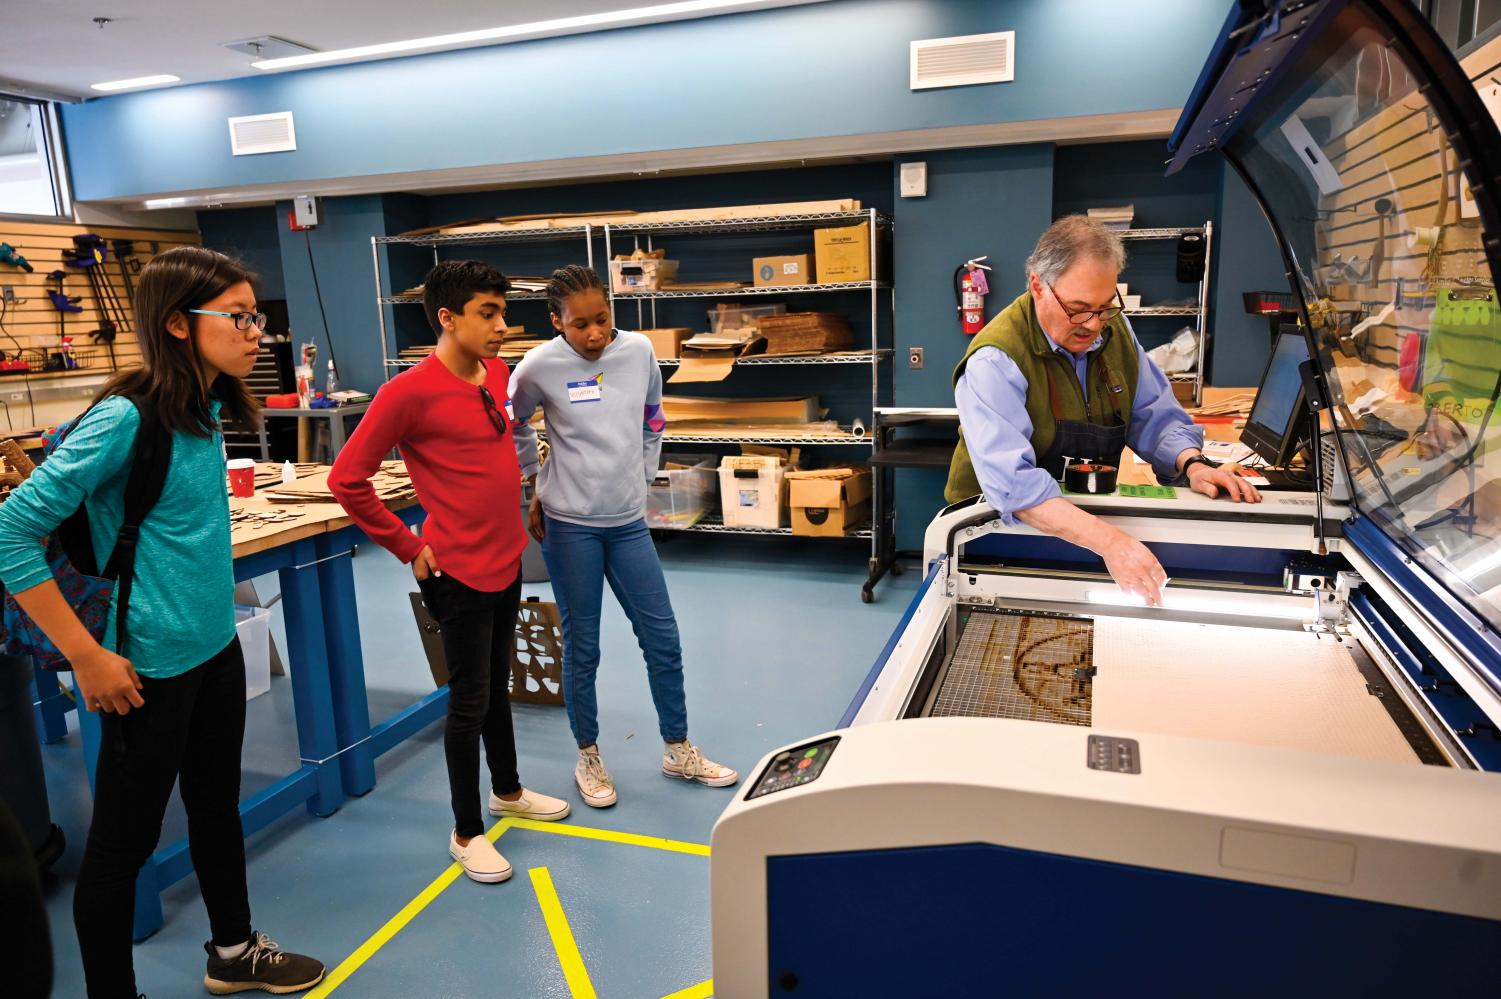 Mr. Brad Faus, director of visual arts, demonstrates the laser cutter in the EFX Lab.